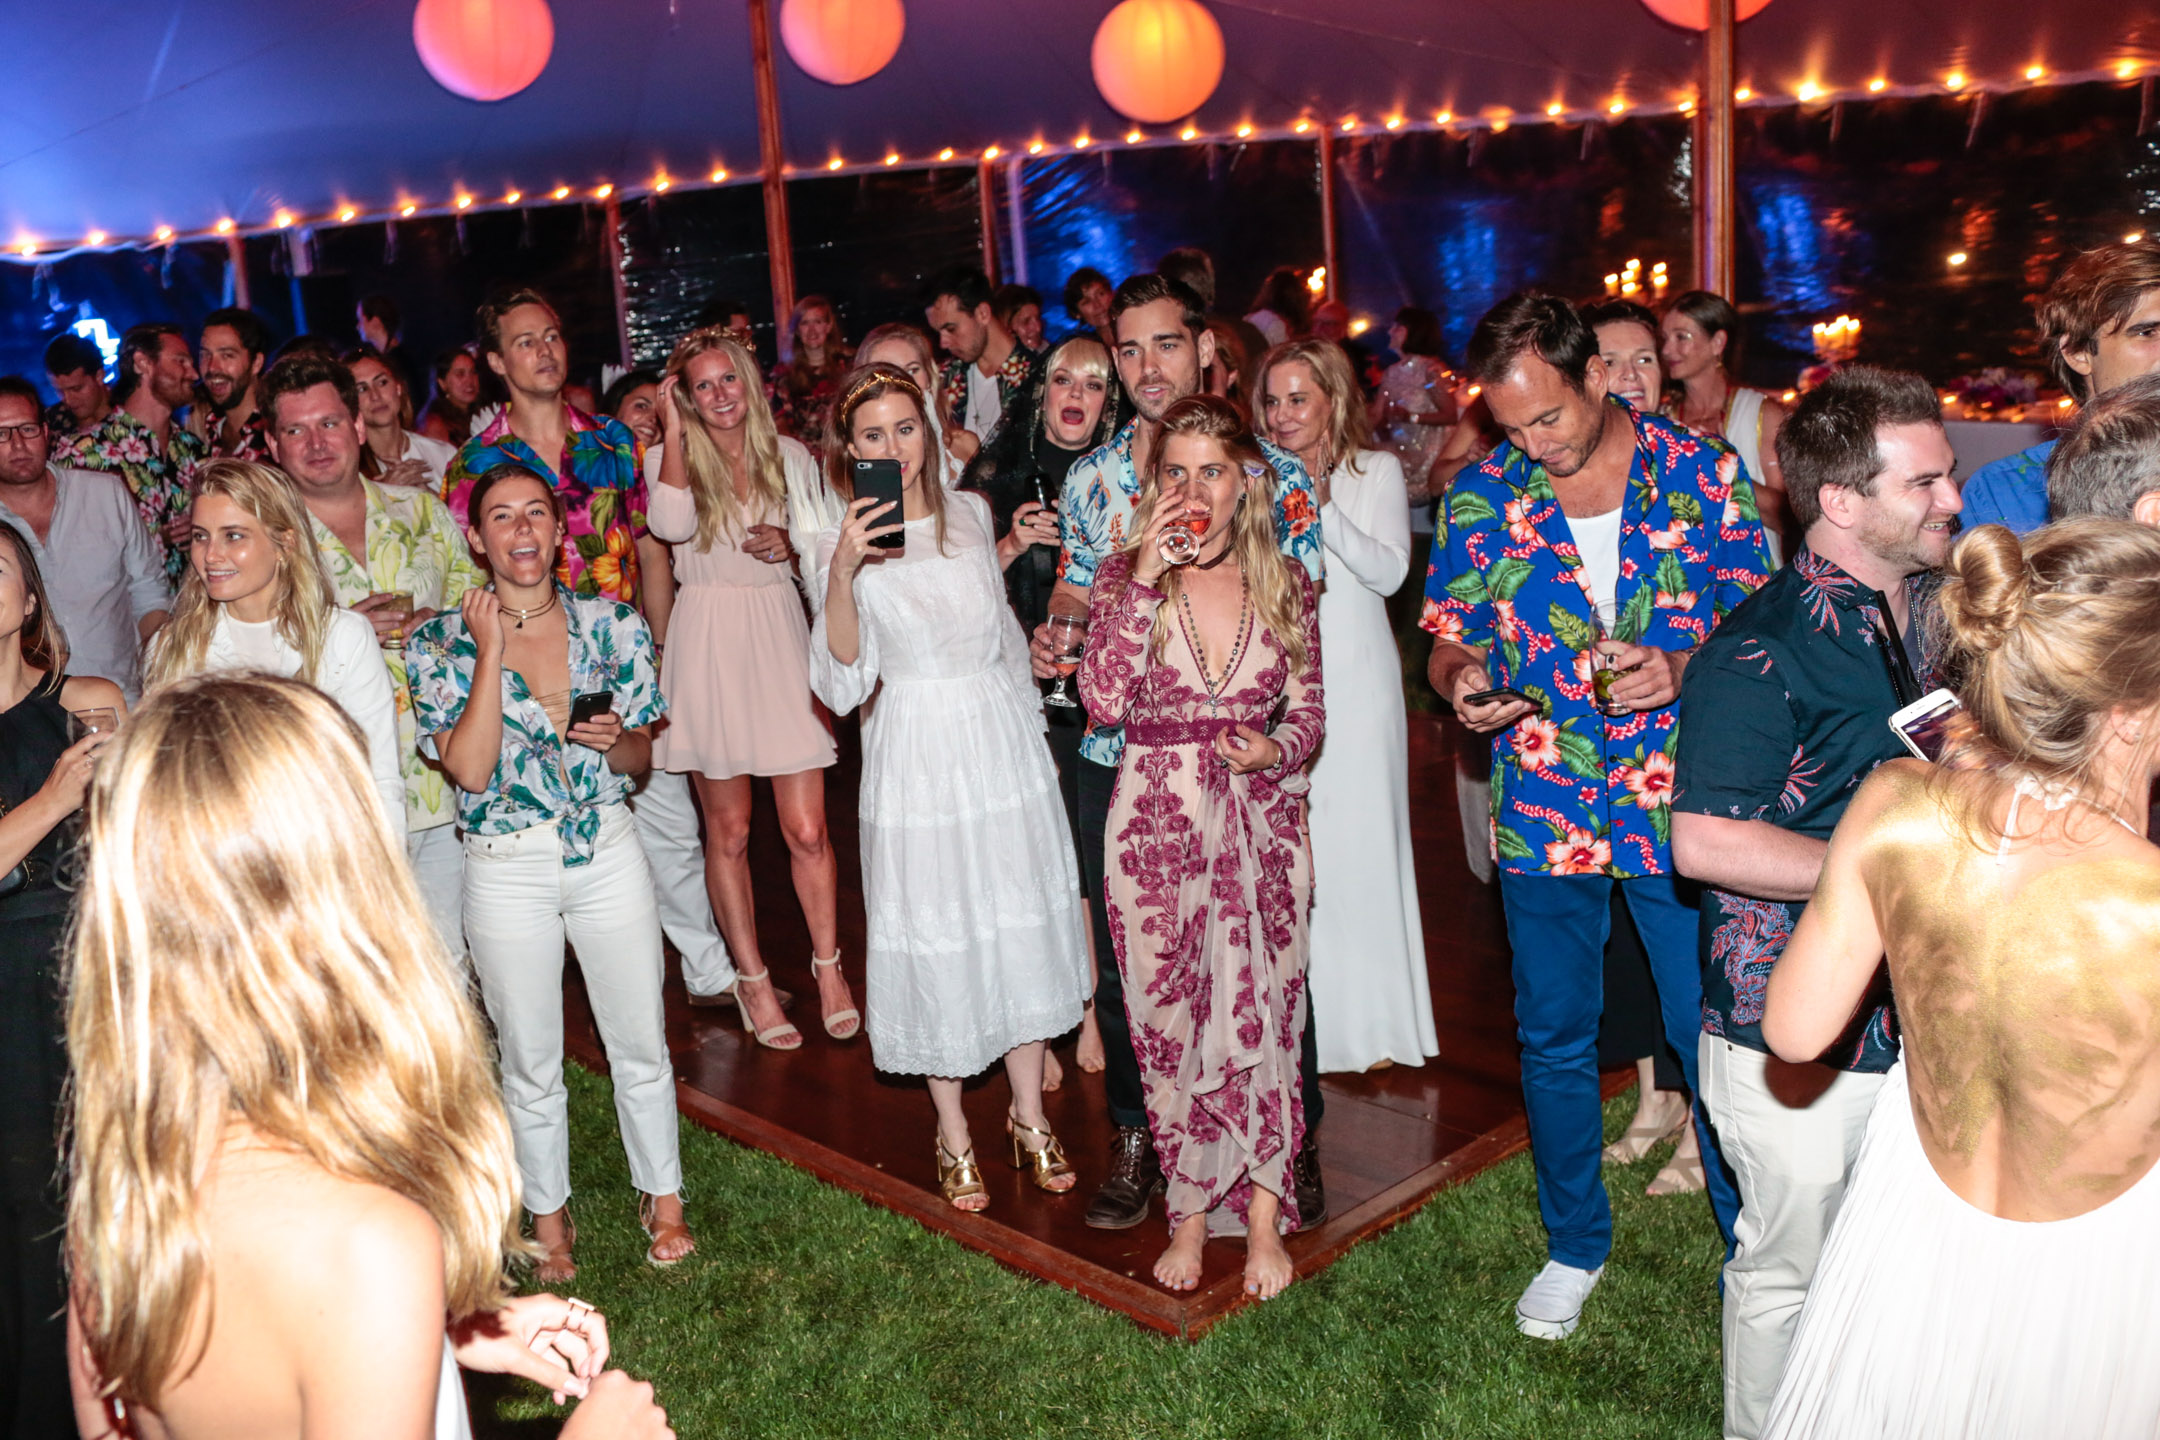 2eric_striffler_photography_event_party-21.jpg